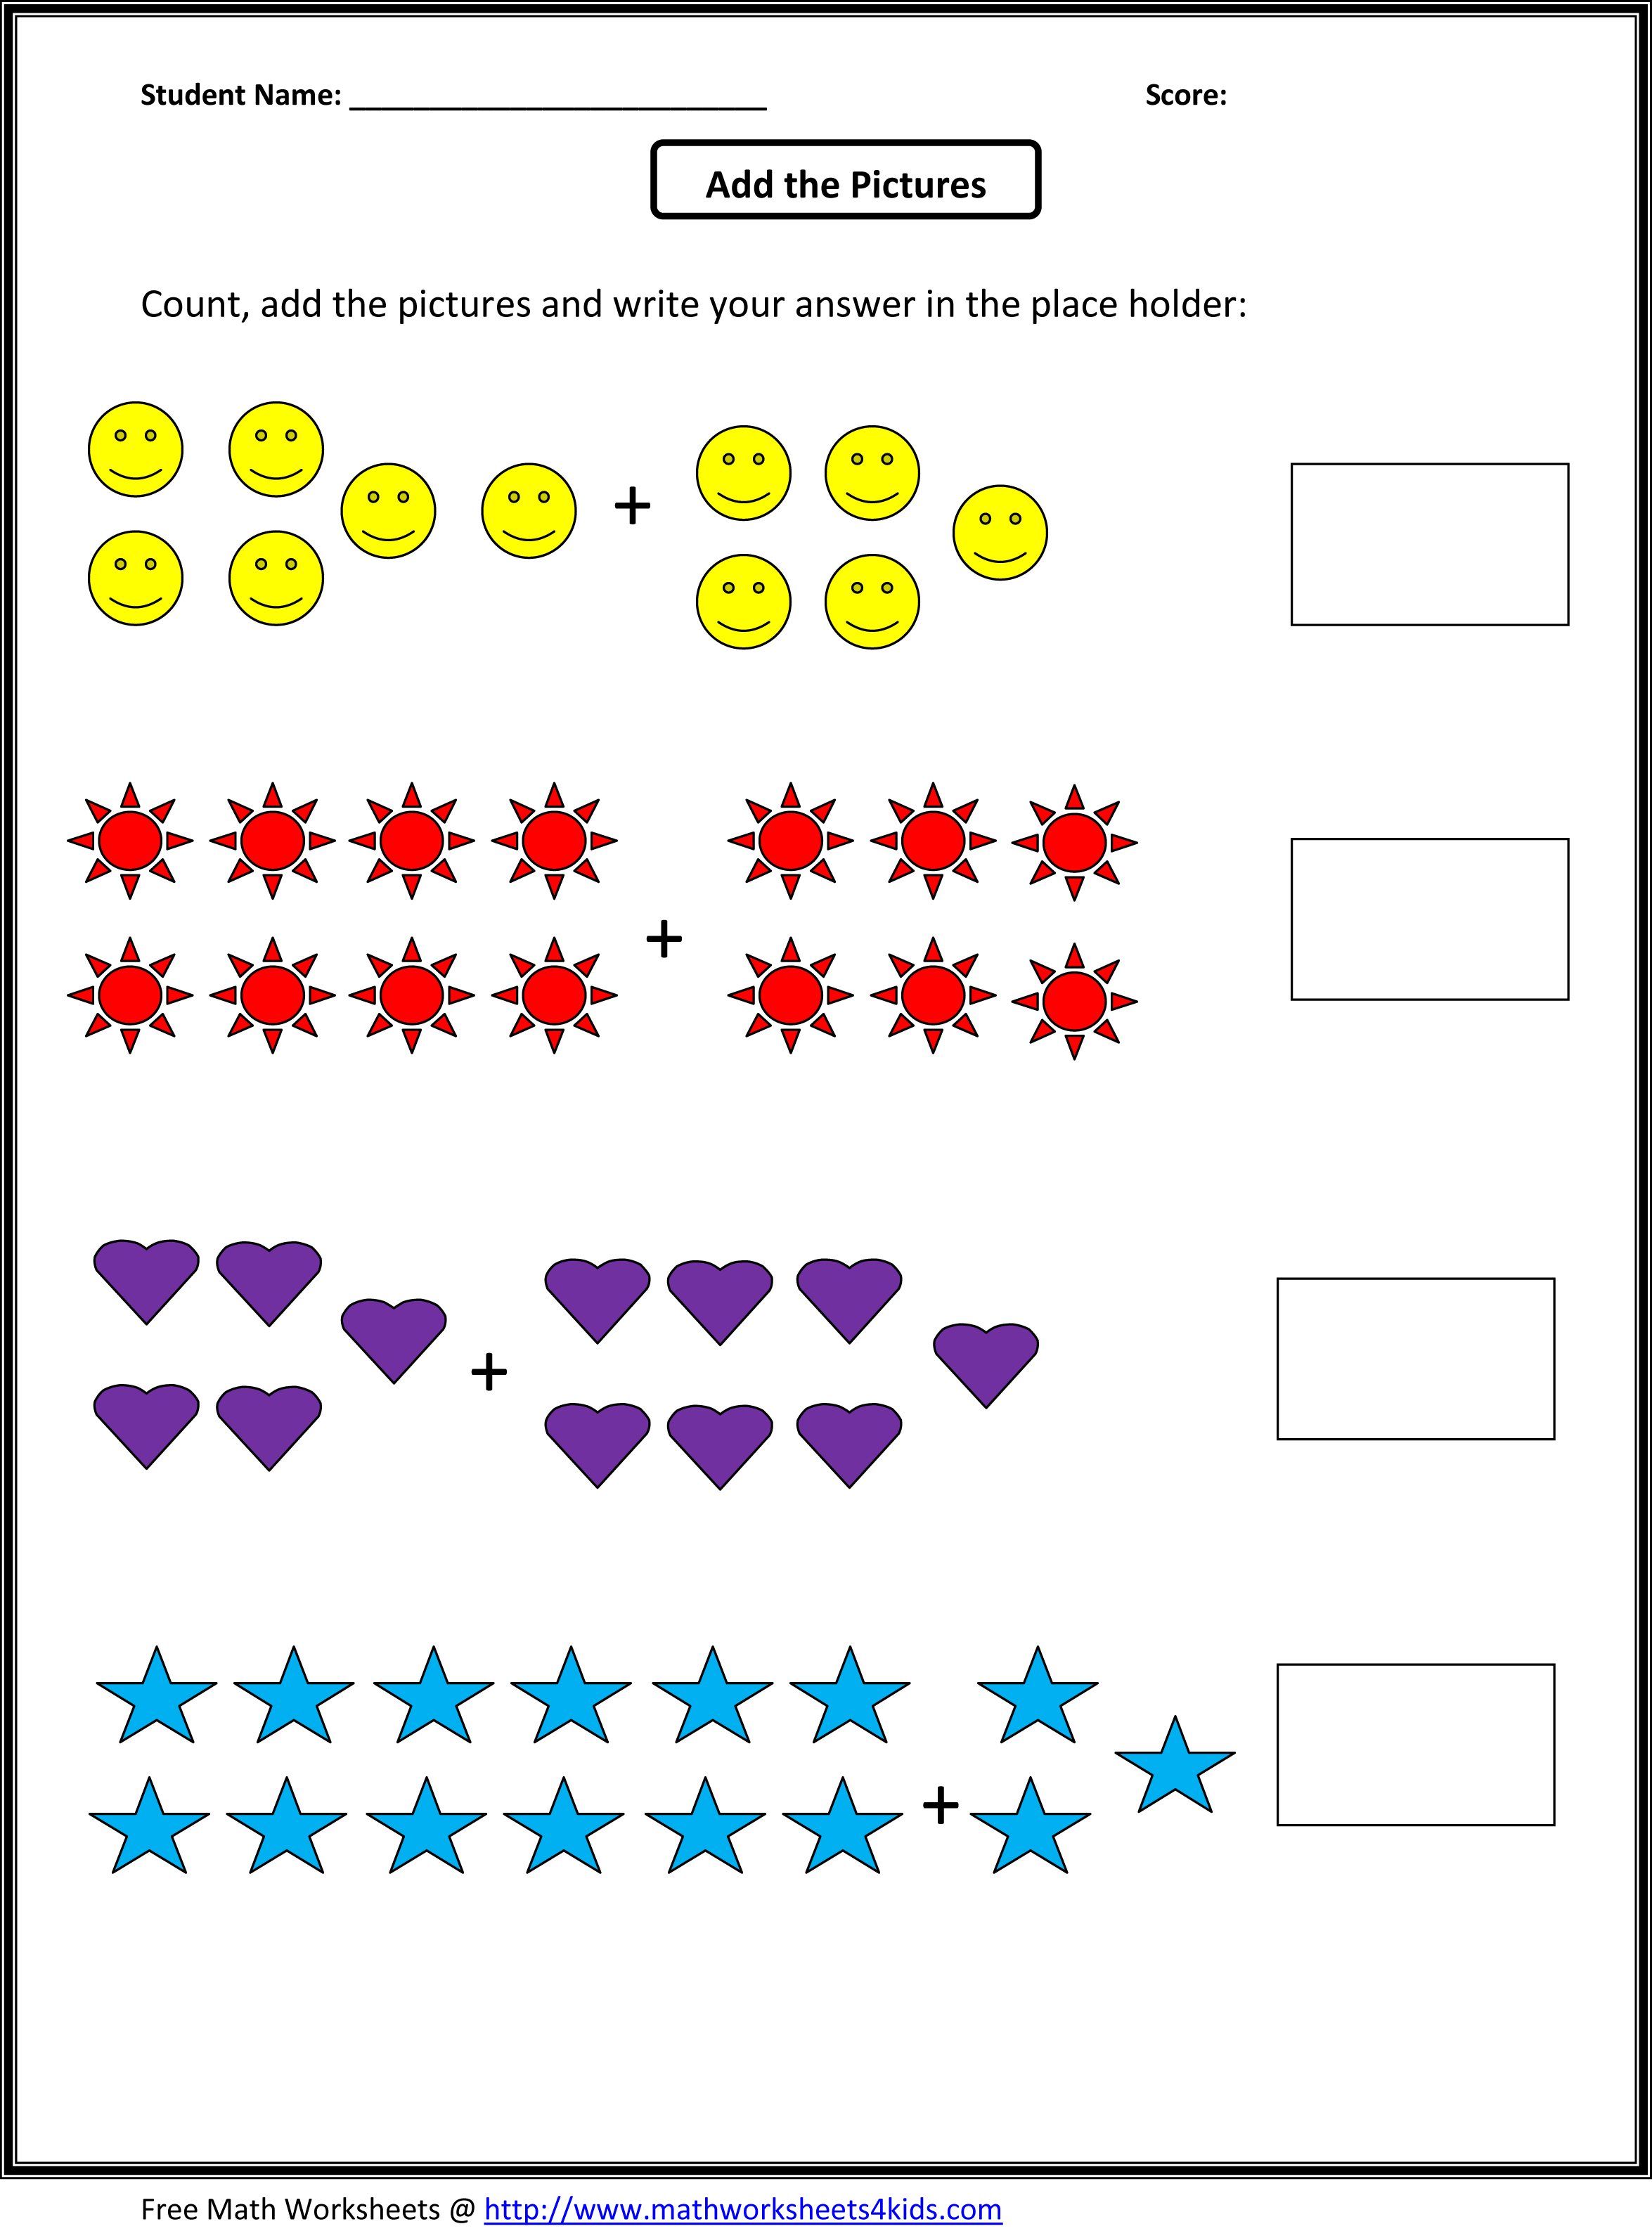 Weirdmailus  Terrific Grade  Maths Worksheet  Reocurent With Excellent Math Worksheets For St Grade Free  Reocurent With Agreeable Grade  French Immersion Worksheets Also Different States Of Matter Worksheets In Addition Verb Worksheets With Answers And Math Table Worksheets As Well As  Math Facts Worksheets Additionally Dot To Dot Name Worksheets From Reocurentcom With Weirdmailus  Excellent Grade  Maths Worksheet  Reocurent With Agreeable Math Worksheets For St Grade Free  Reocurent And Terrific Grade  French Immersion Worksheets Also Different States Of Matter Worksheets In Addition Verb Worksheets With Answers From Reocurentcom